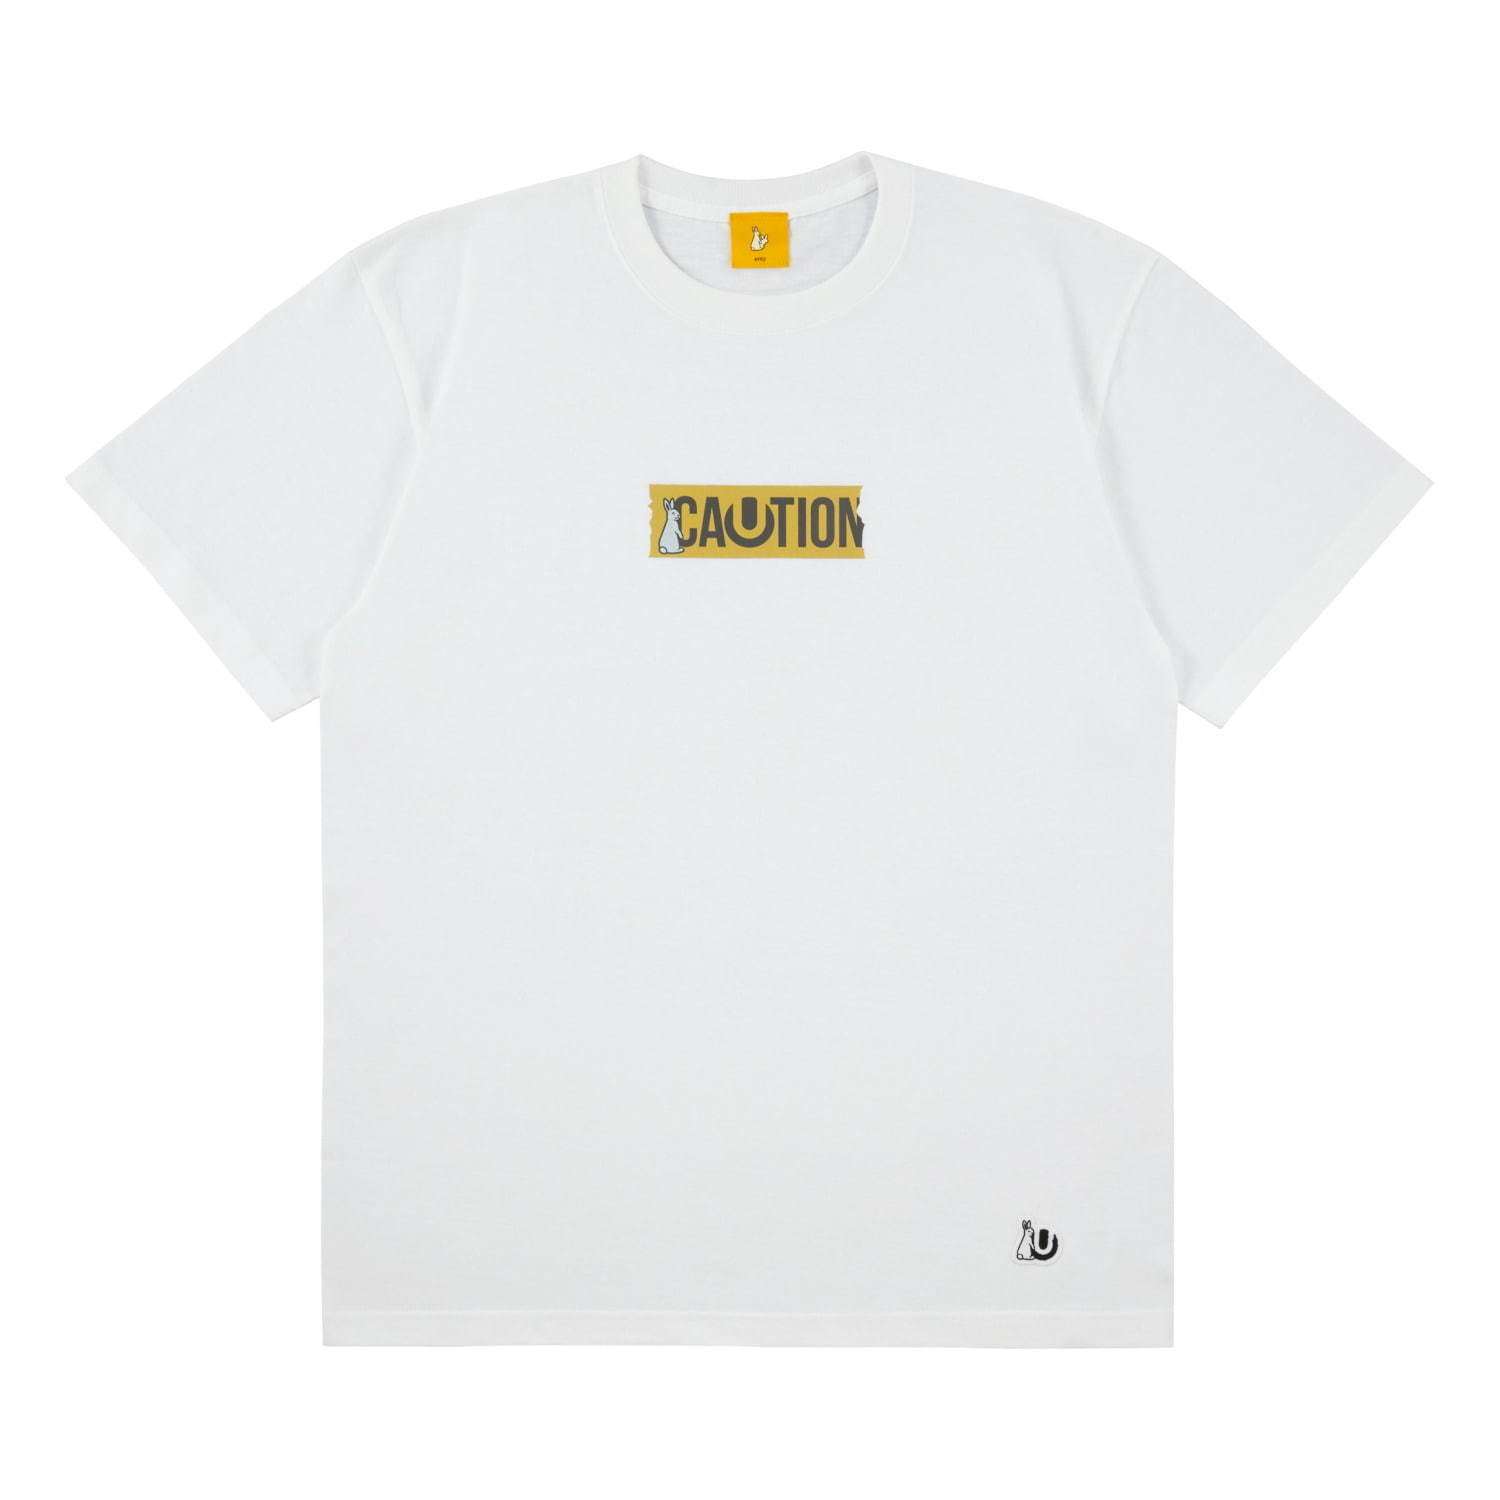 ULTRA JAPAN×FR2 CAUTION Tシャツ 7,000円(税込)